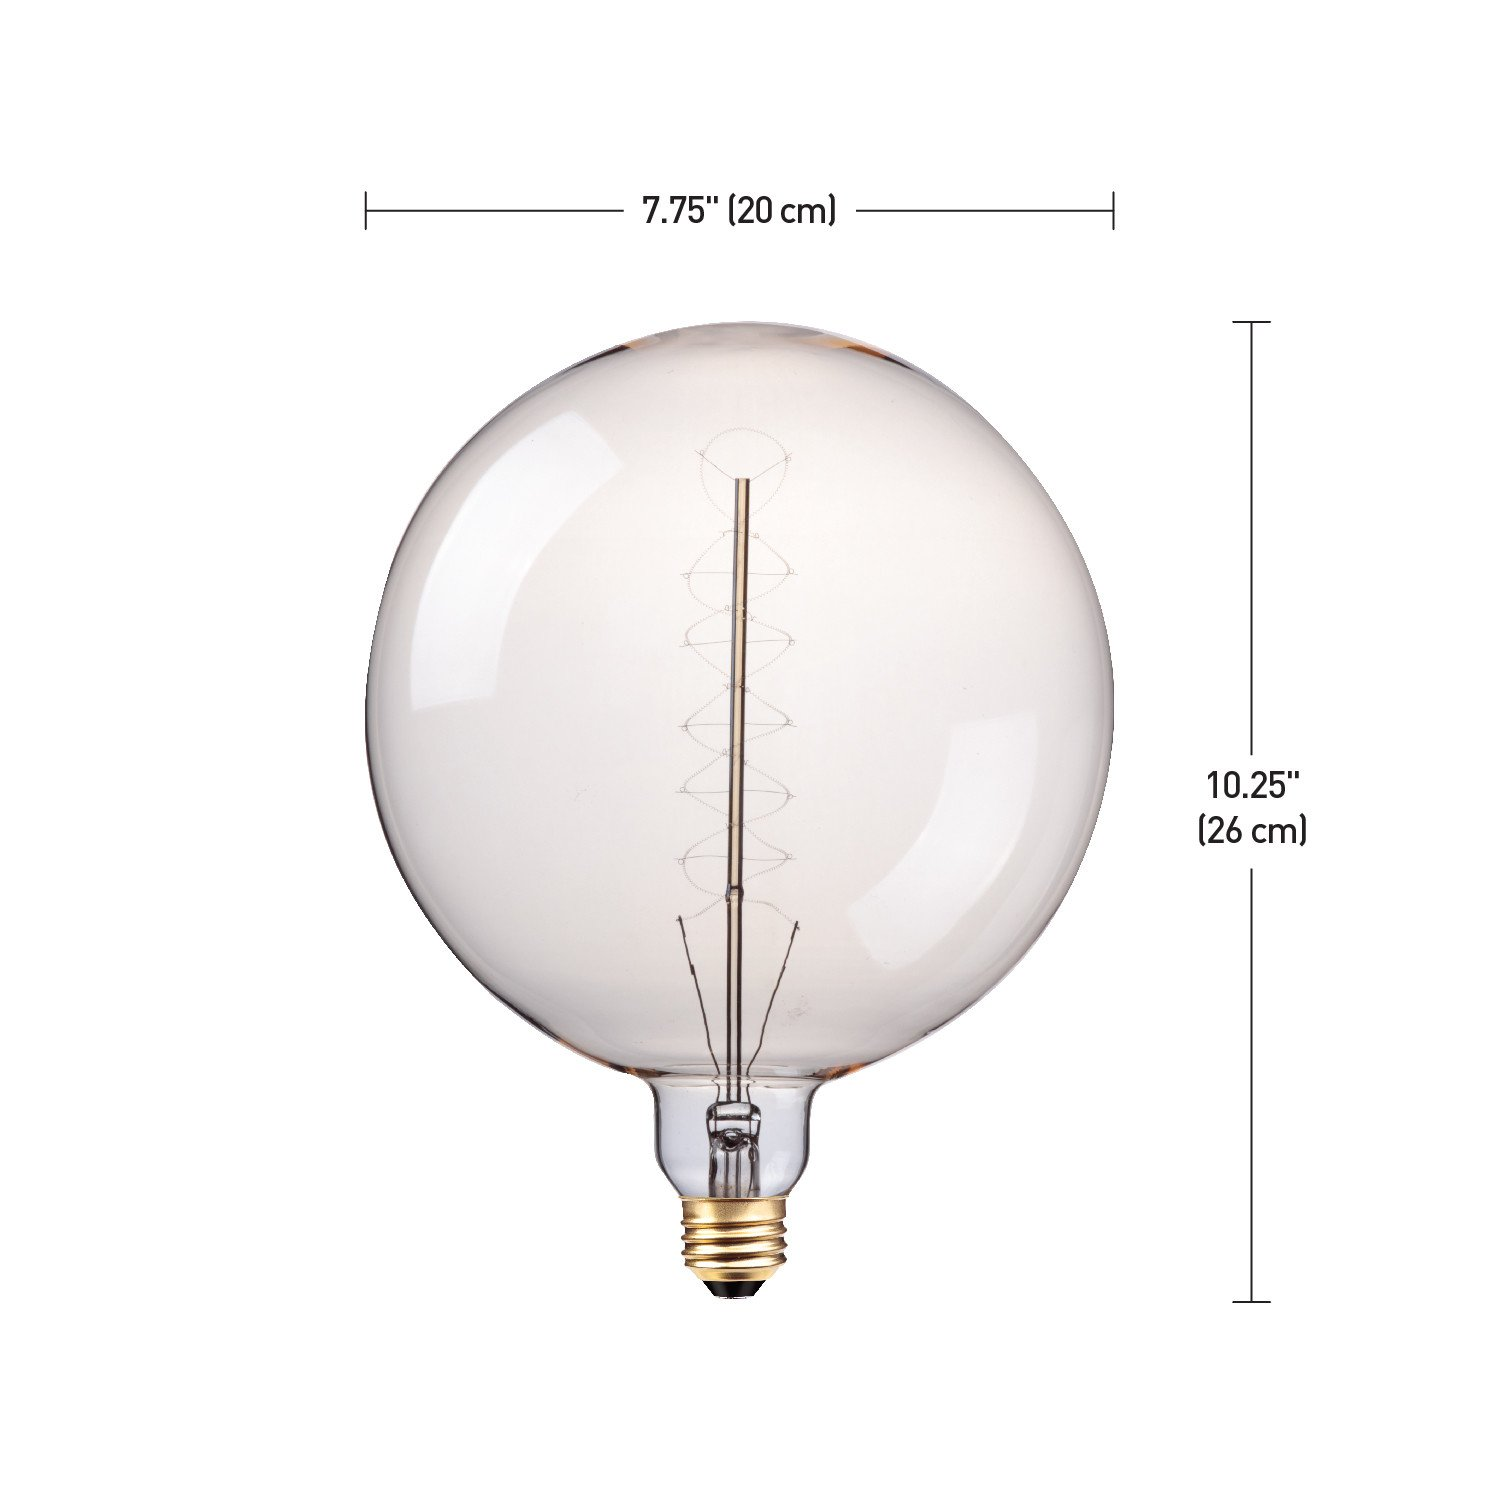 Globe Electric 100w Oversized Vintage Style Clear Glass Dimmable Incandescent Light Bulb Diagram Bulbs E26 Base 400 Lumens 80126